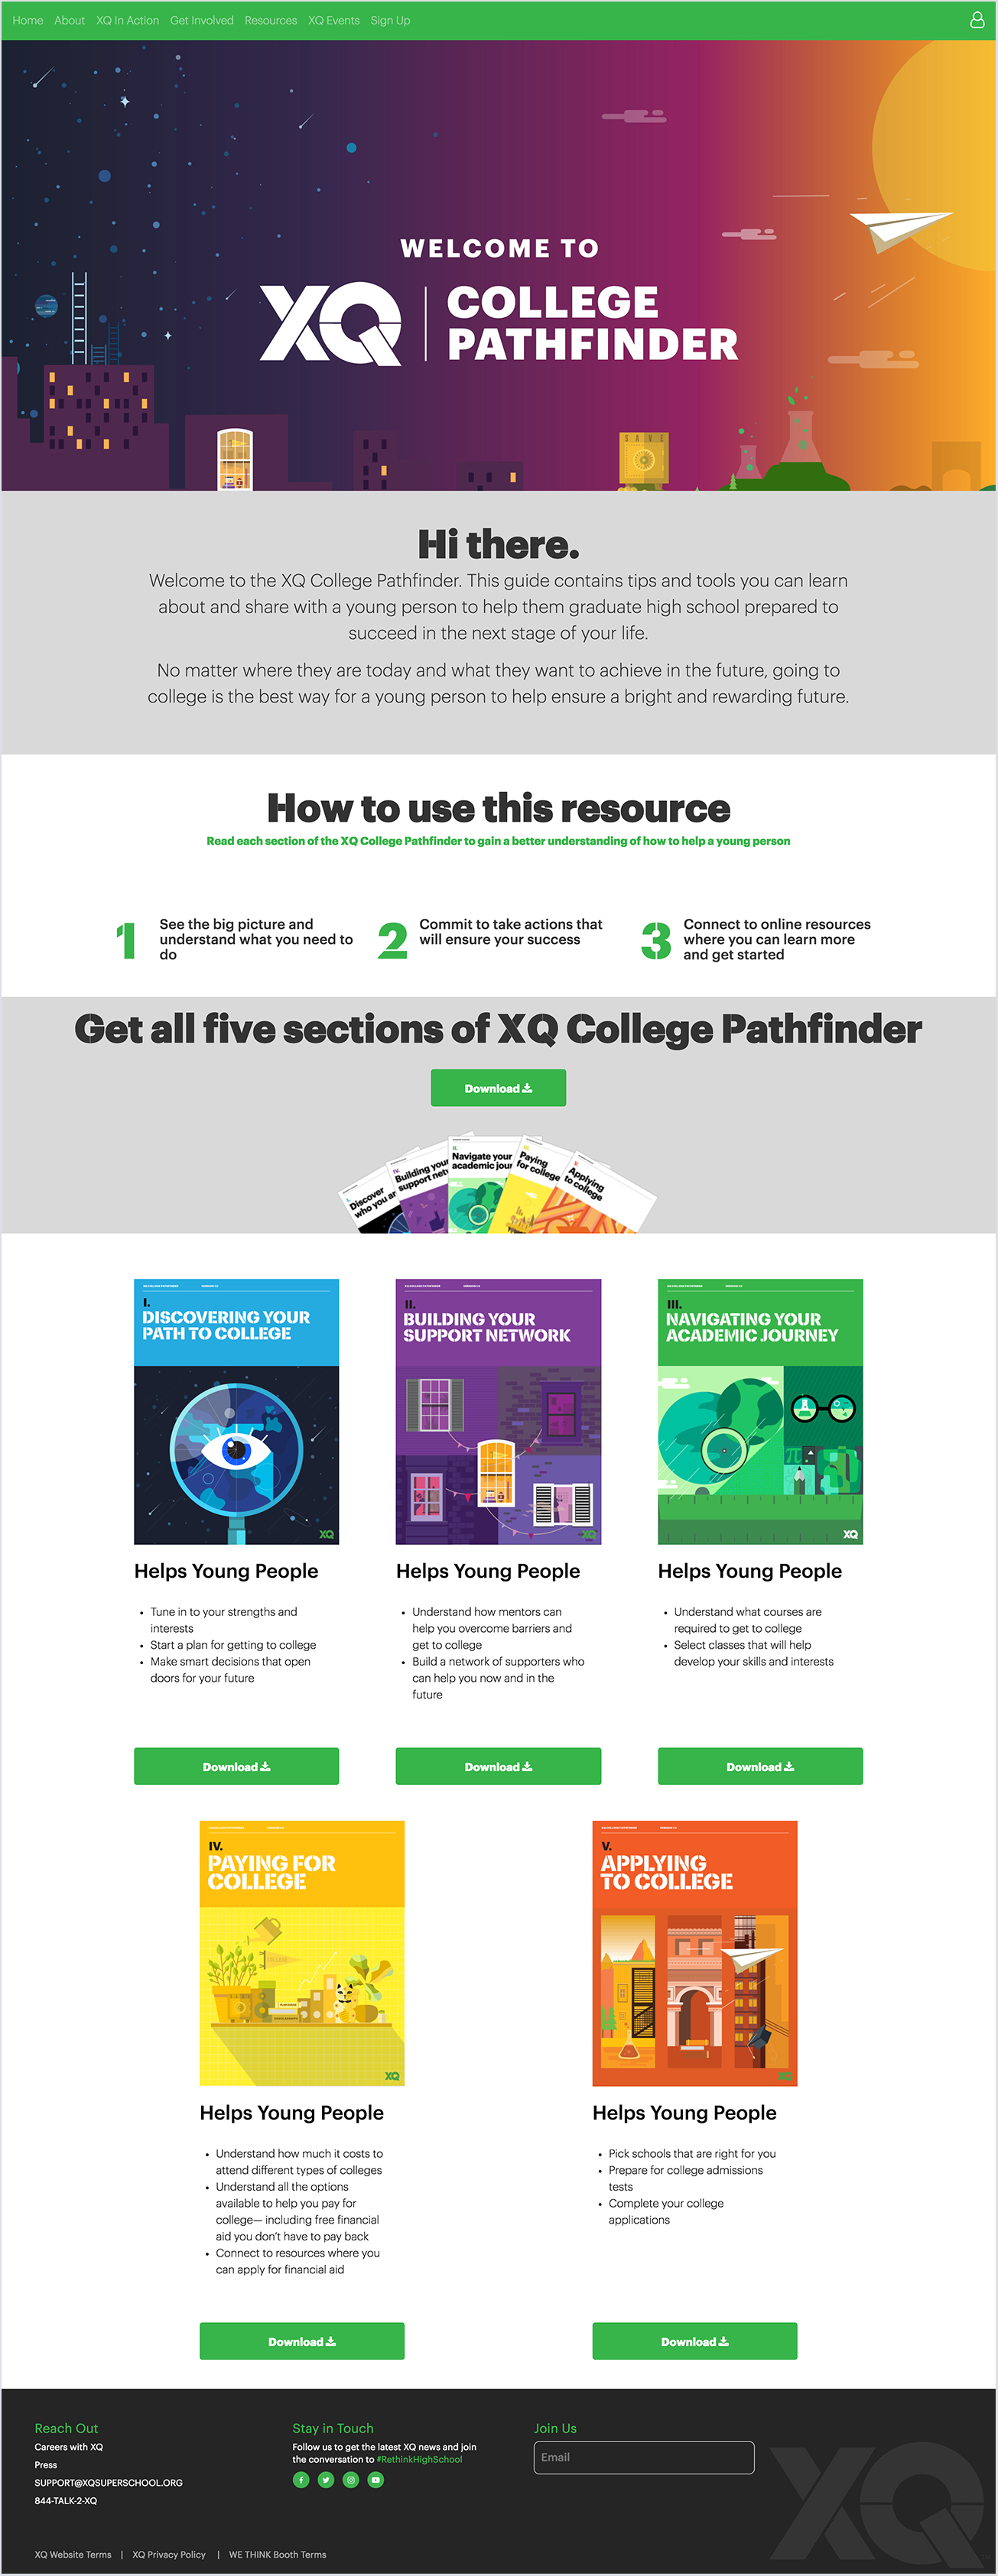 Final Passport to College (re-named College Pathfinder) launched in conjunction with the movement kick-off